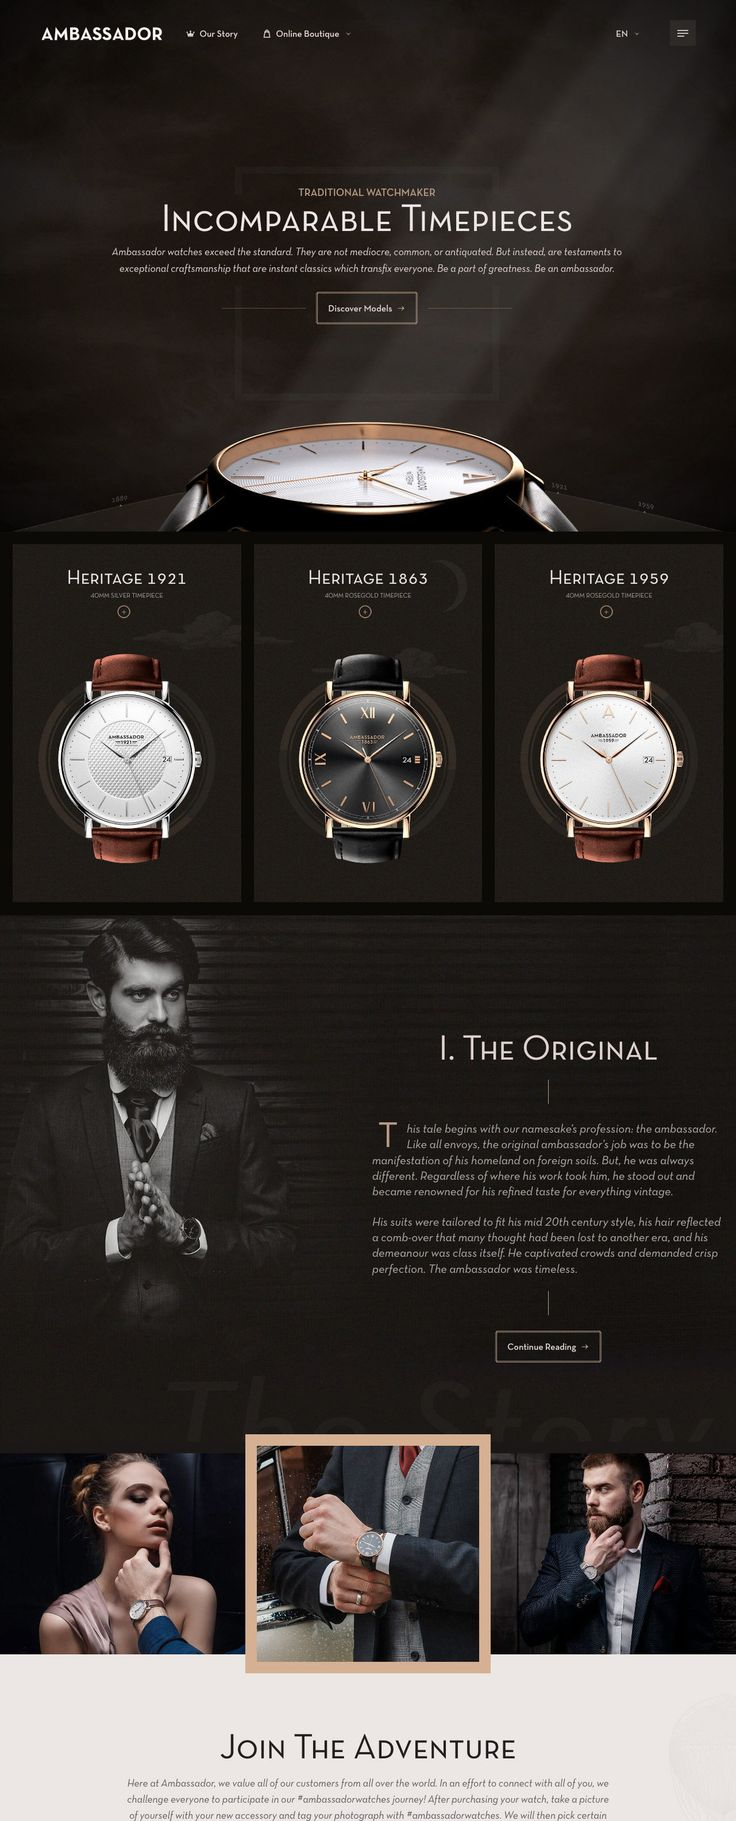 Ambassador Watches (More web design inspiration at topdesigninspiration.com) #design #web #webdesign #sitedesign #responsive #ux #ui